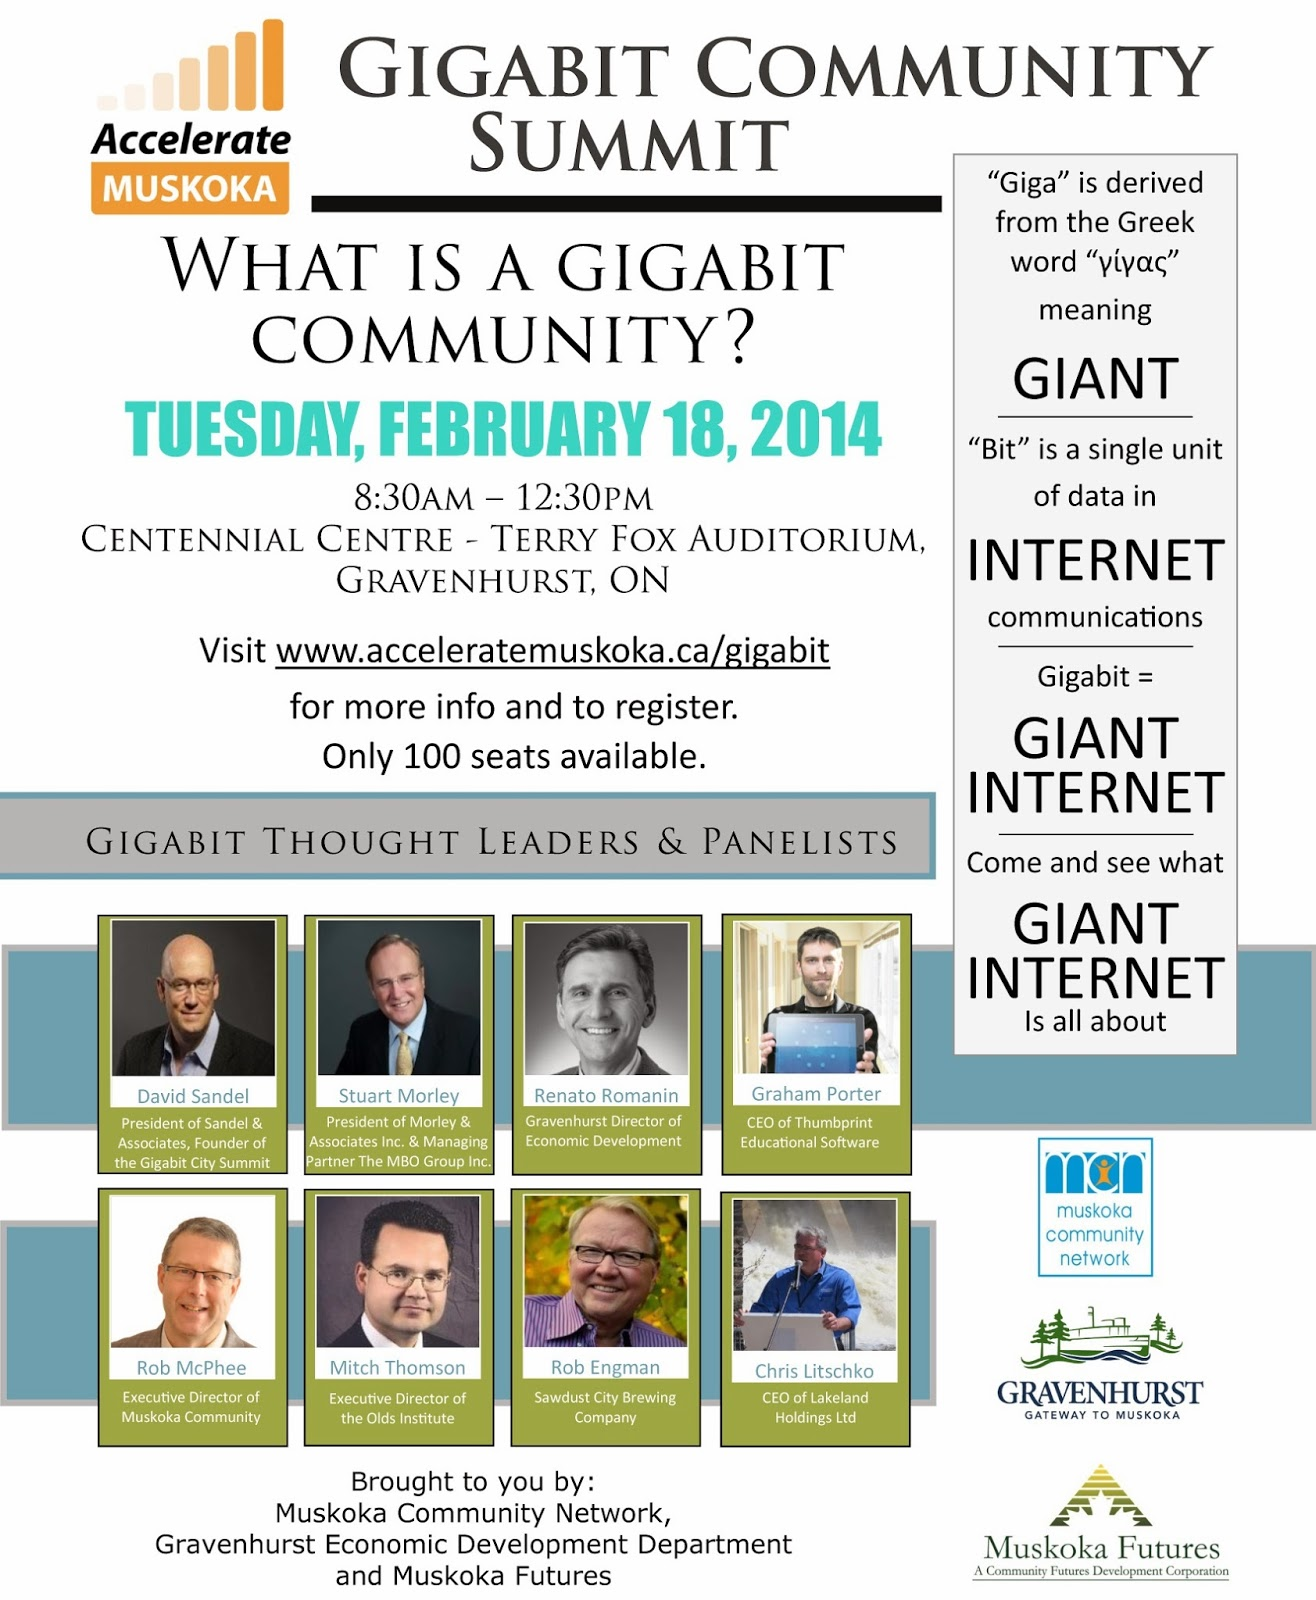 Gigabit Community Summit